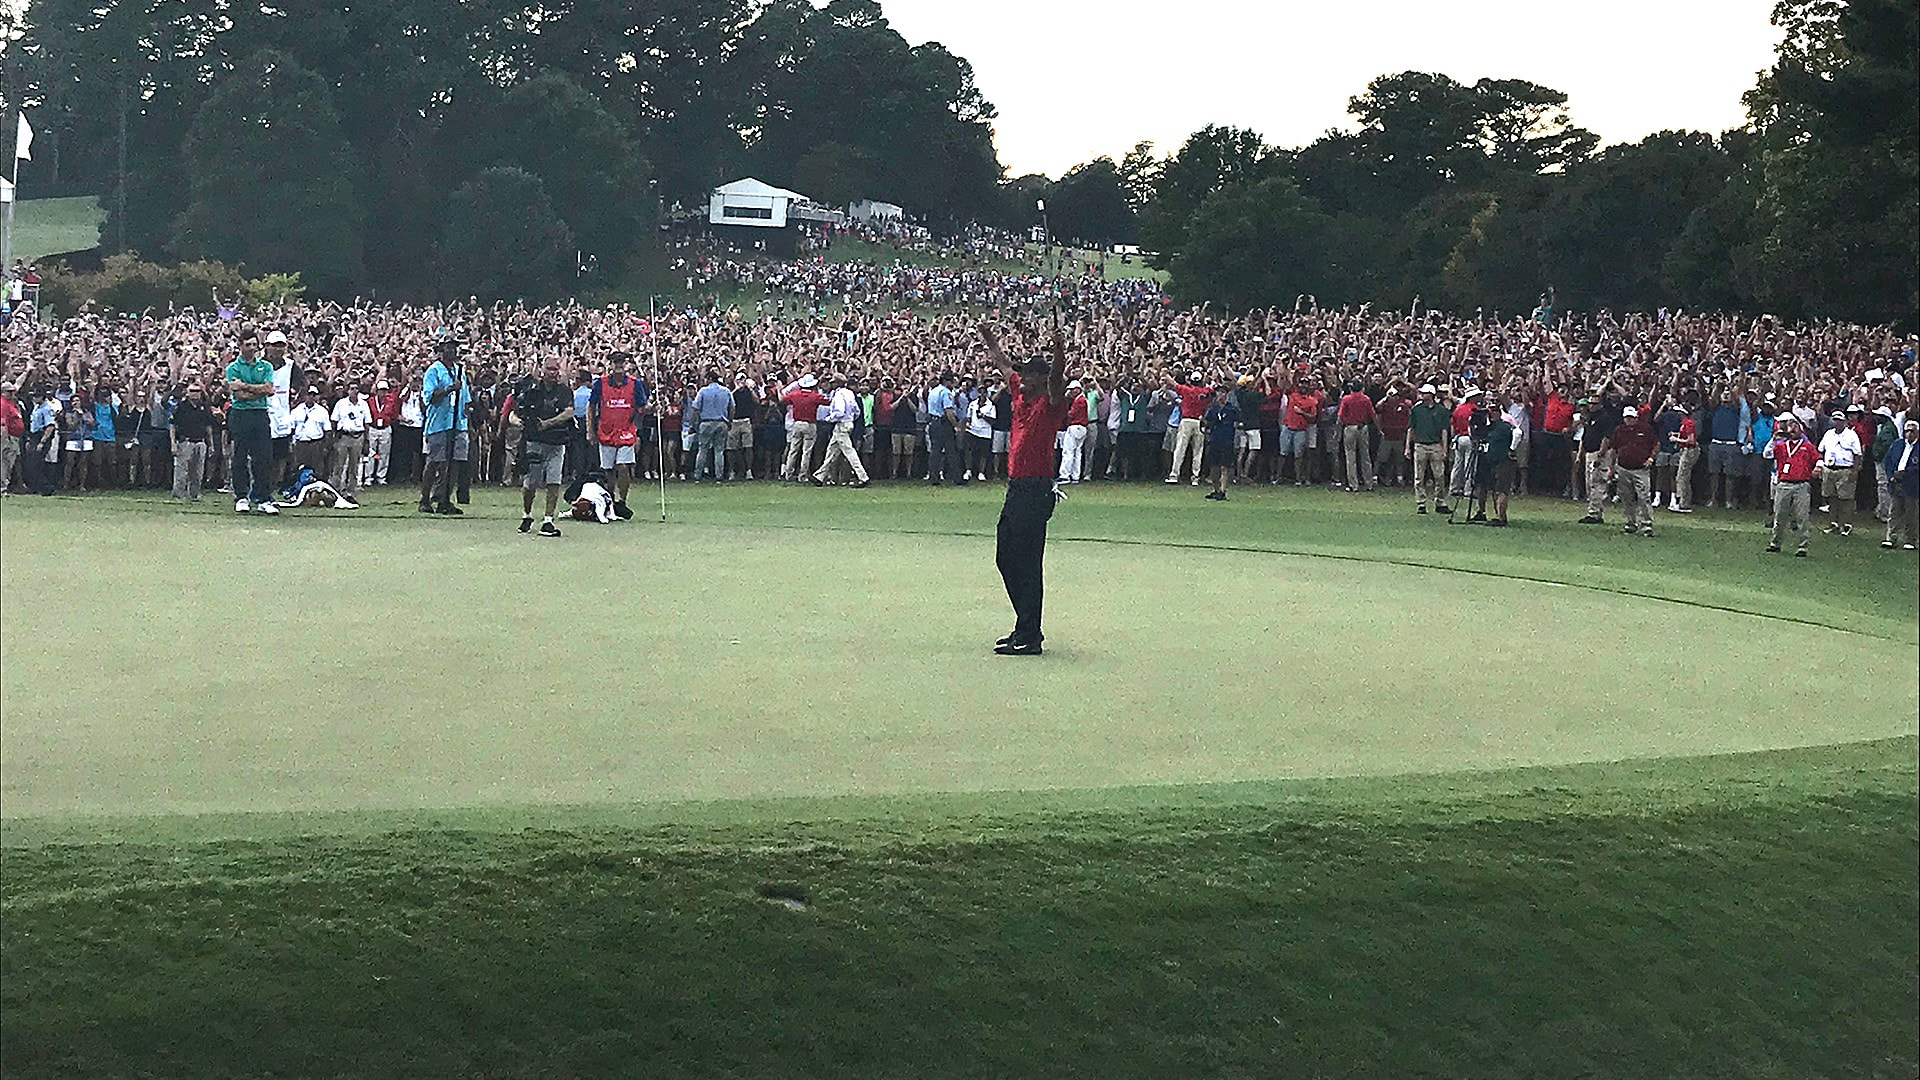 Tiger Woods en route to winning the 2018 Tour Championship (Mercer Baggs)